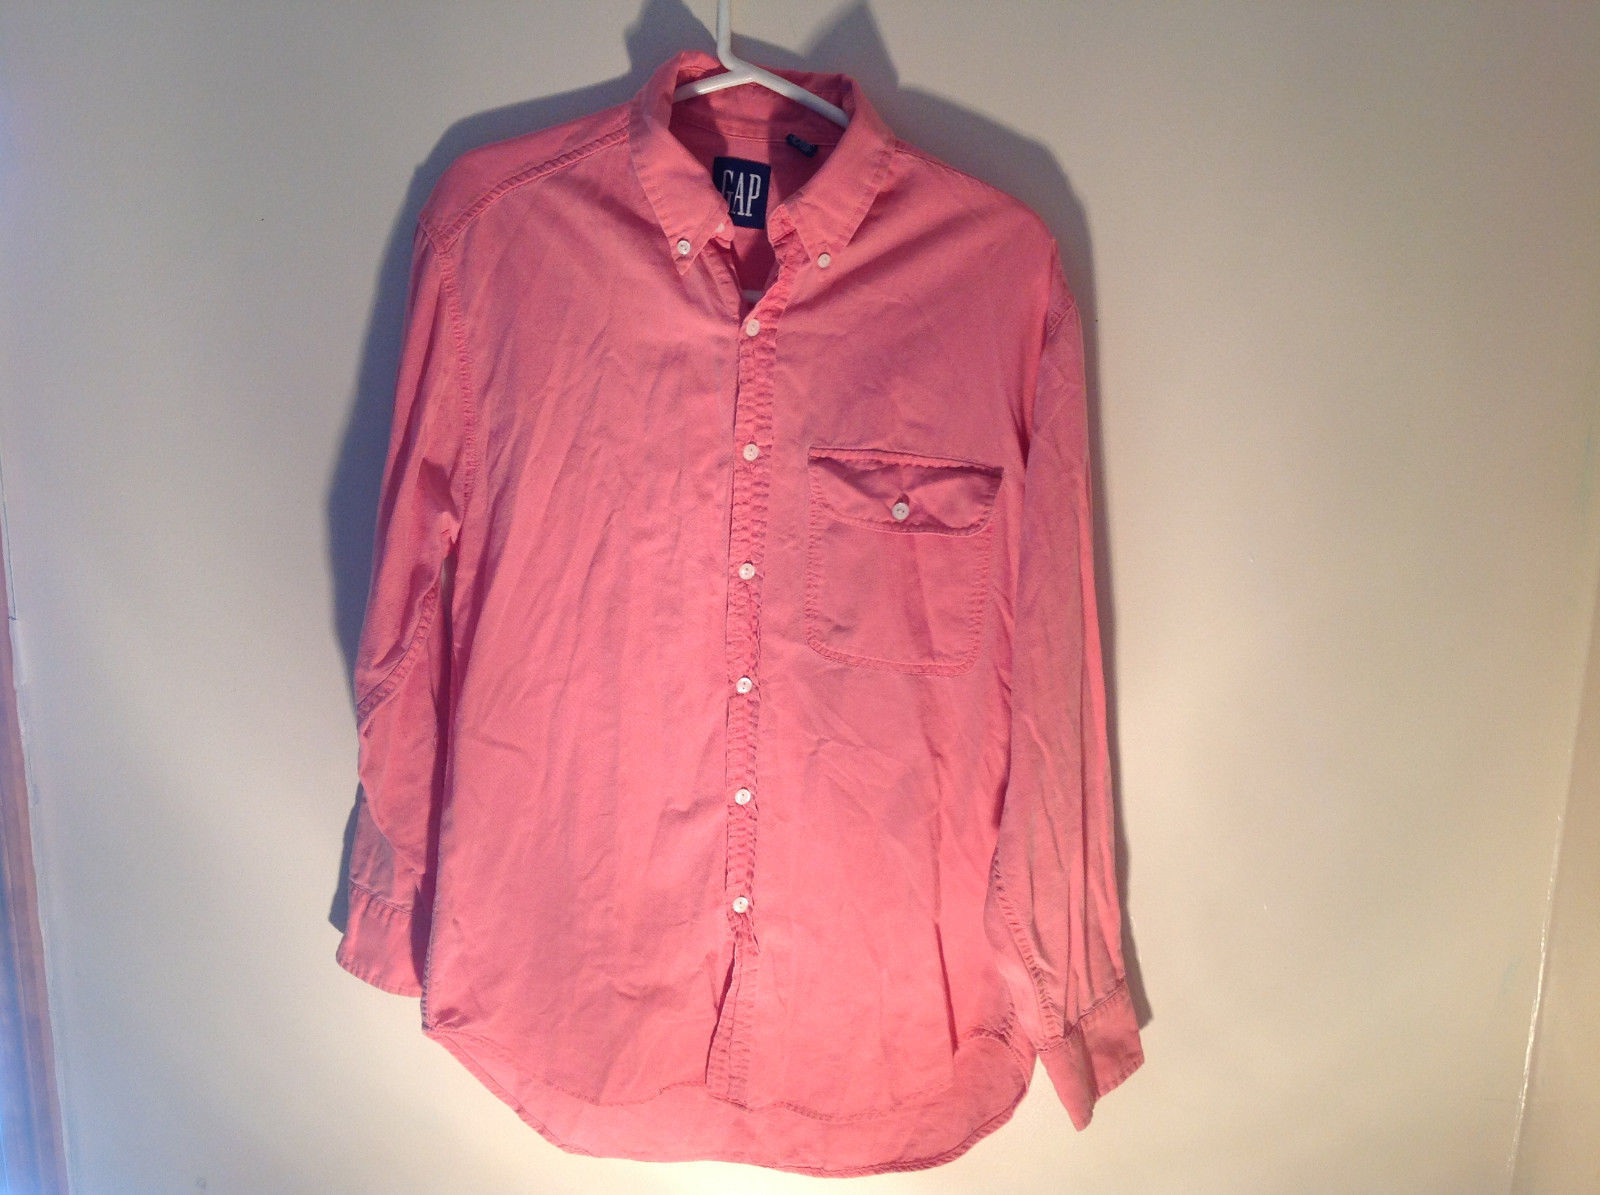 Light Pink Long Sleeve Casual Button Up Shirt Front Pocket on Chest GAP Size S